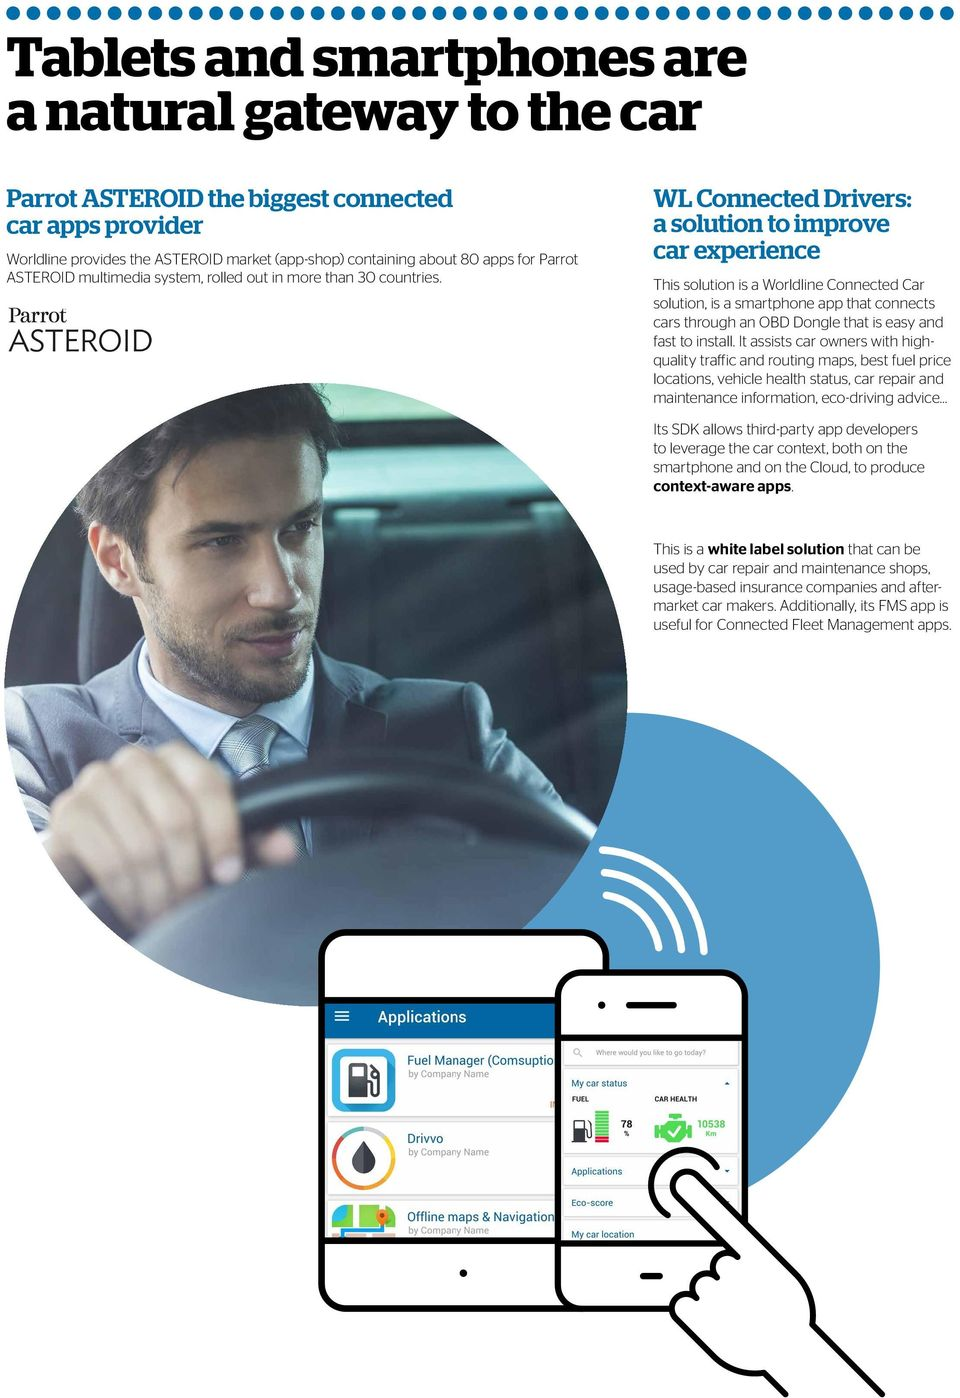 WL Connected Drivers: a solution to improve car experience This solution is a Worldline Connected Car solution, is a smartphone app that connects cars through an OBD Dongle that is easy and fast to